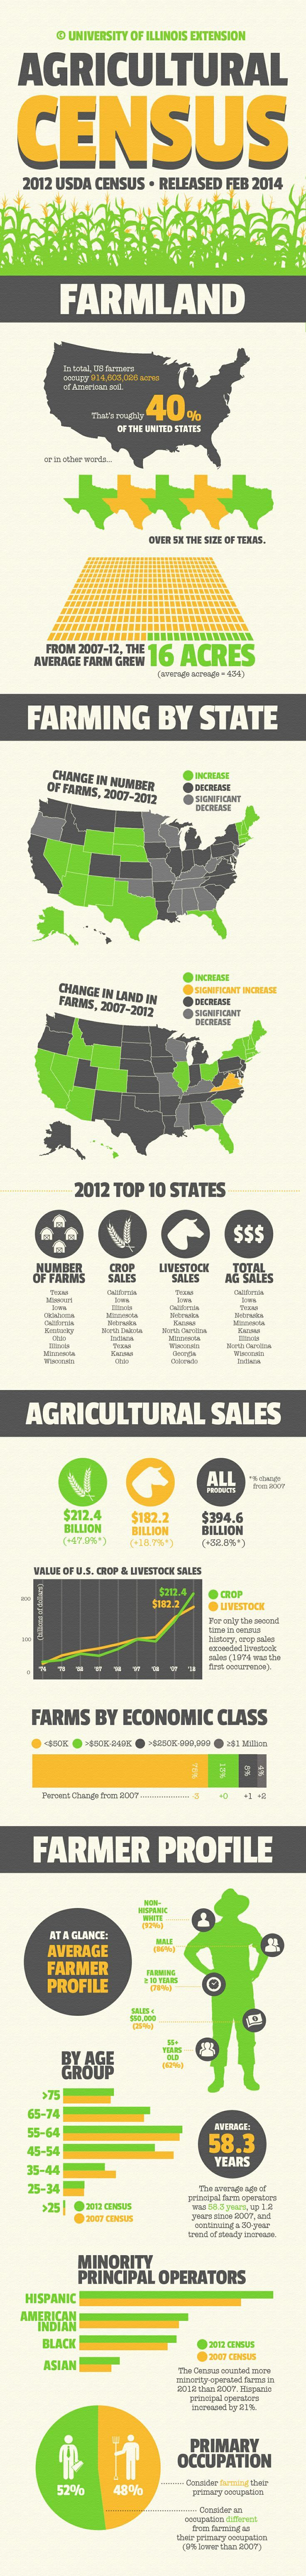 ProAg Friday Fun Ag Fact: University of Illinois Extension Office 2012 Ag Census Data Infographic